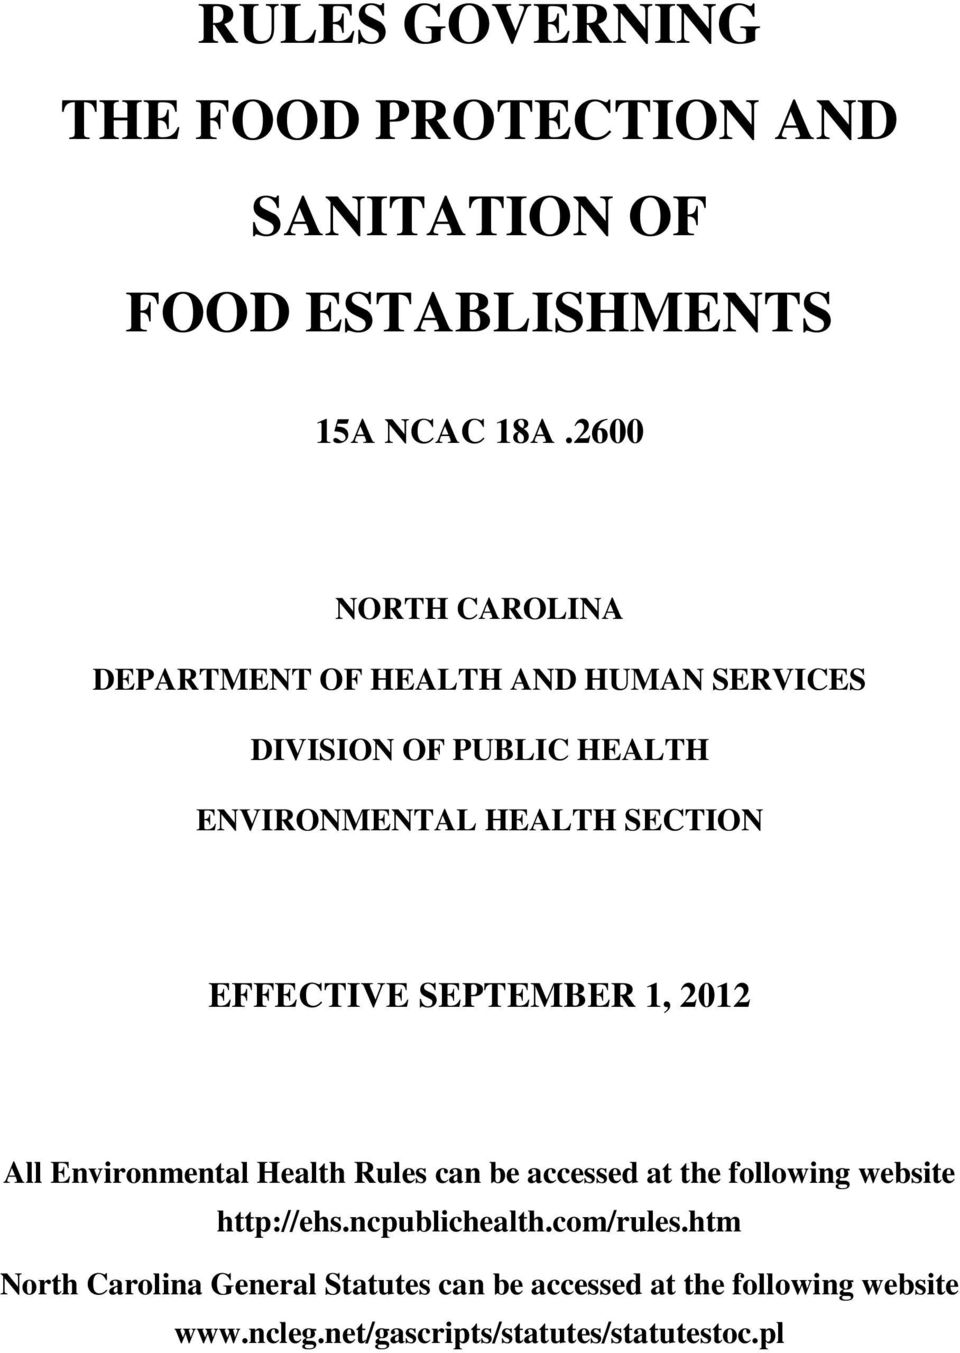 EFFECTIVE SEPTEMBER 1, 2012 All Environmental Health Rules can be accessed at the following website http://ehs.